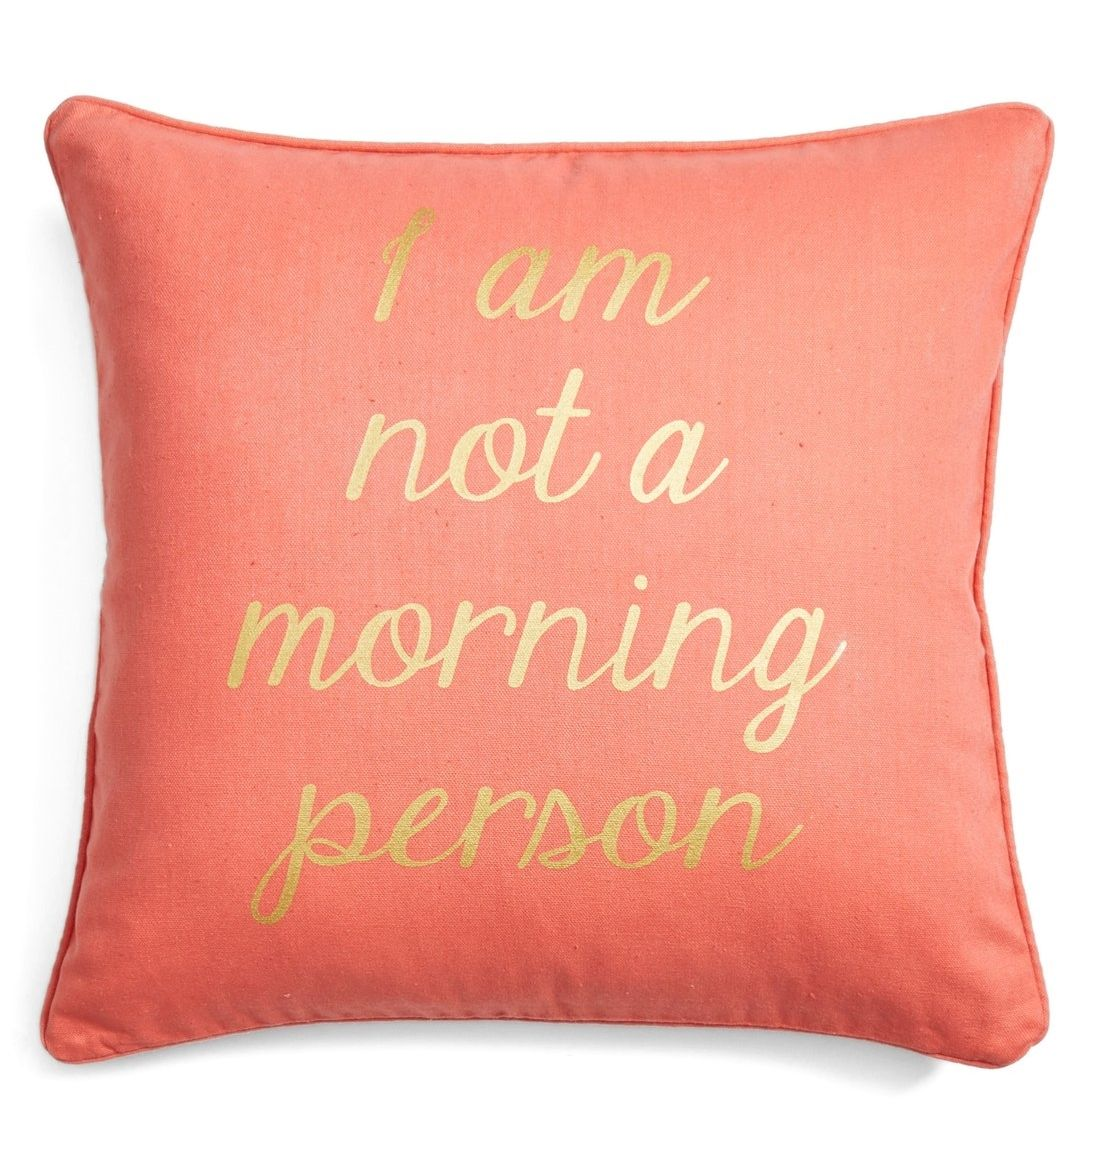 Coral Bed Throw Pillows : Let this pretty coral pillow do the talking on mornings when getting out of bed is simply out of ...